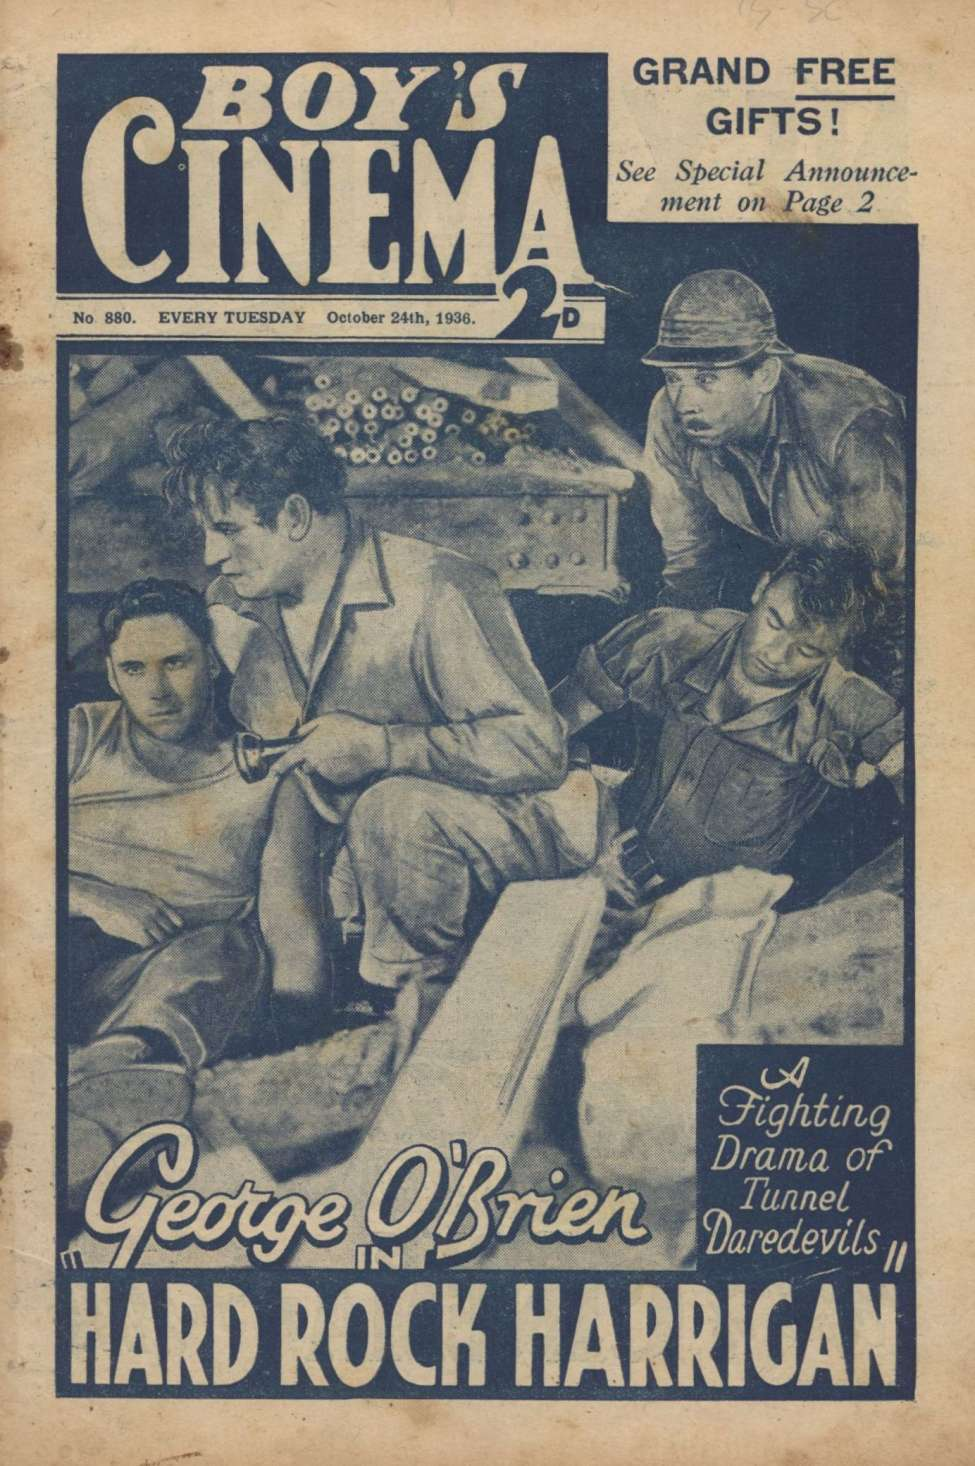 Comic Book Cover For Boy's Cinema 0880 - Hard Rock Harrigan - George O'Brien